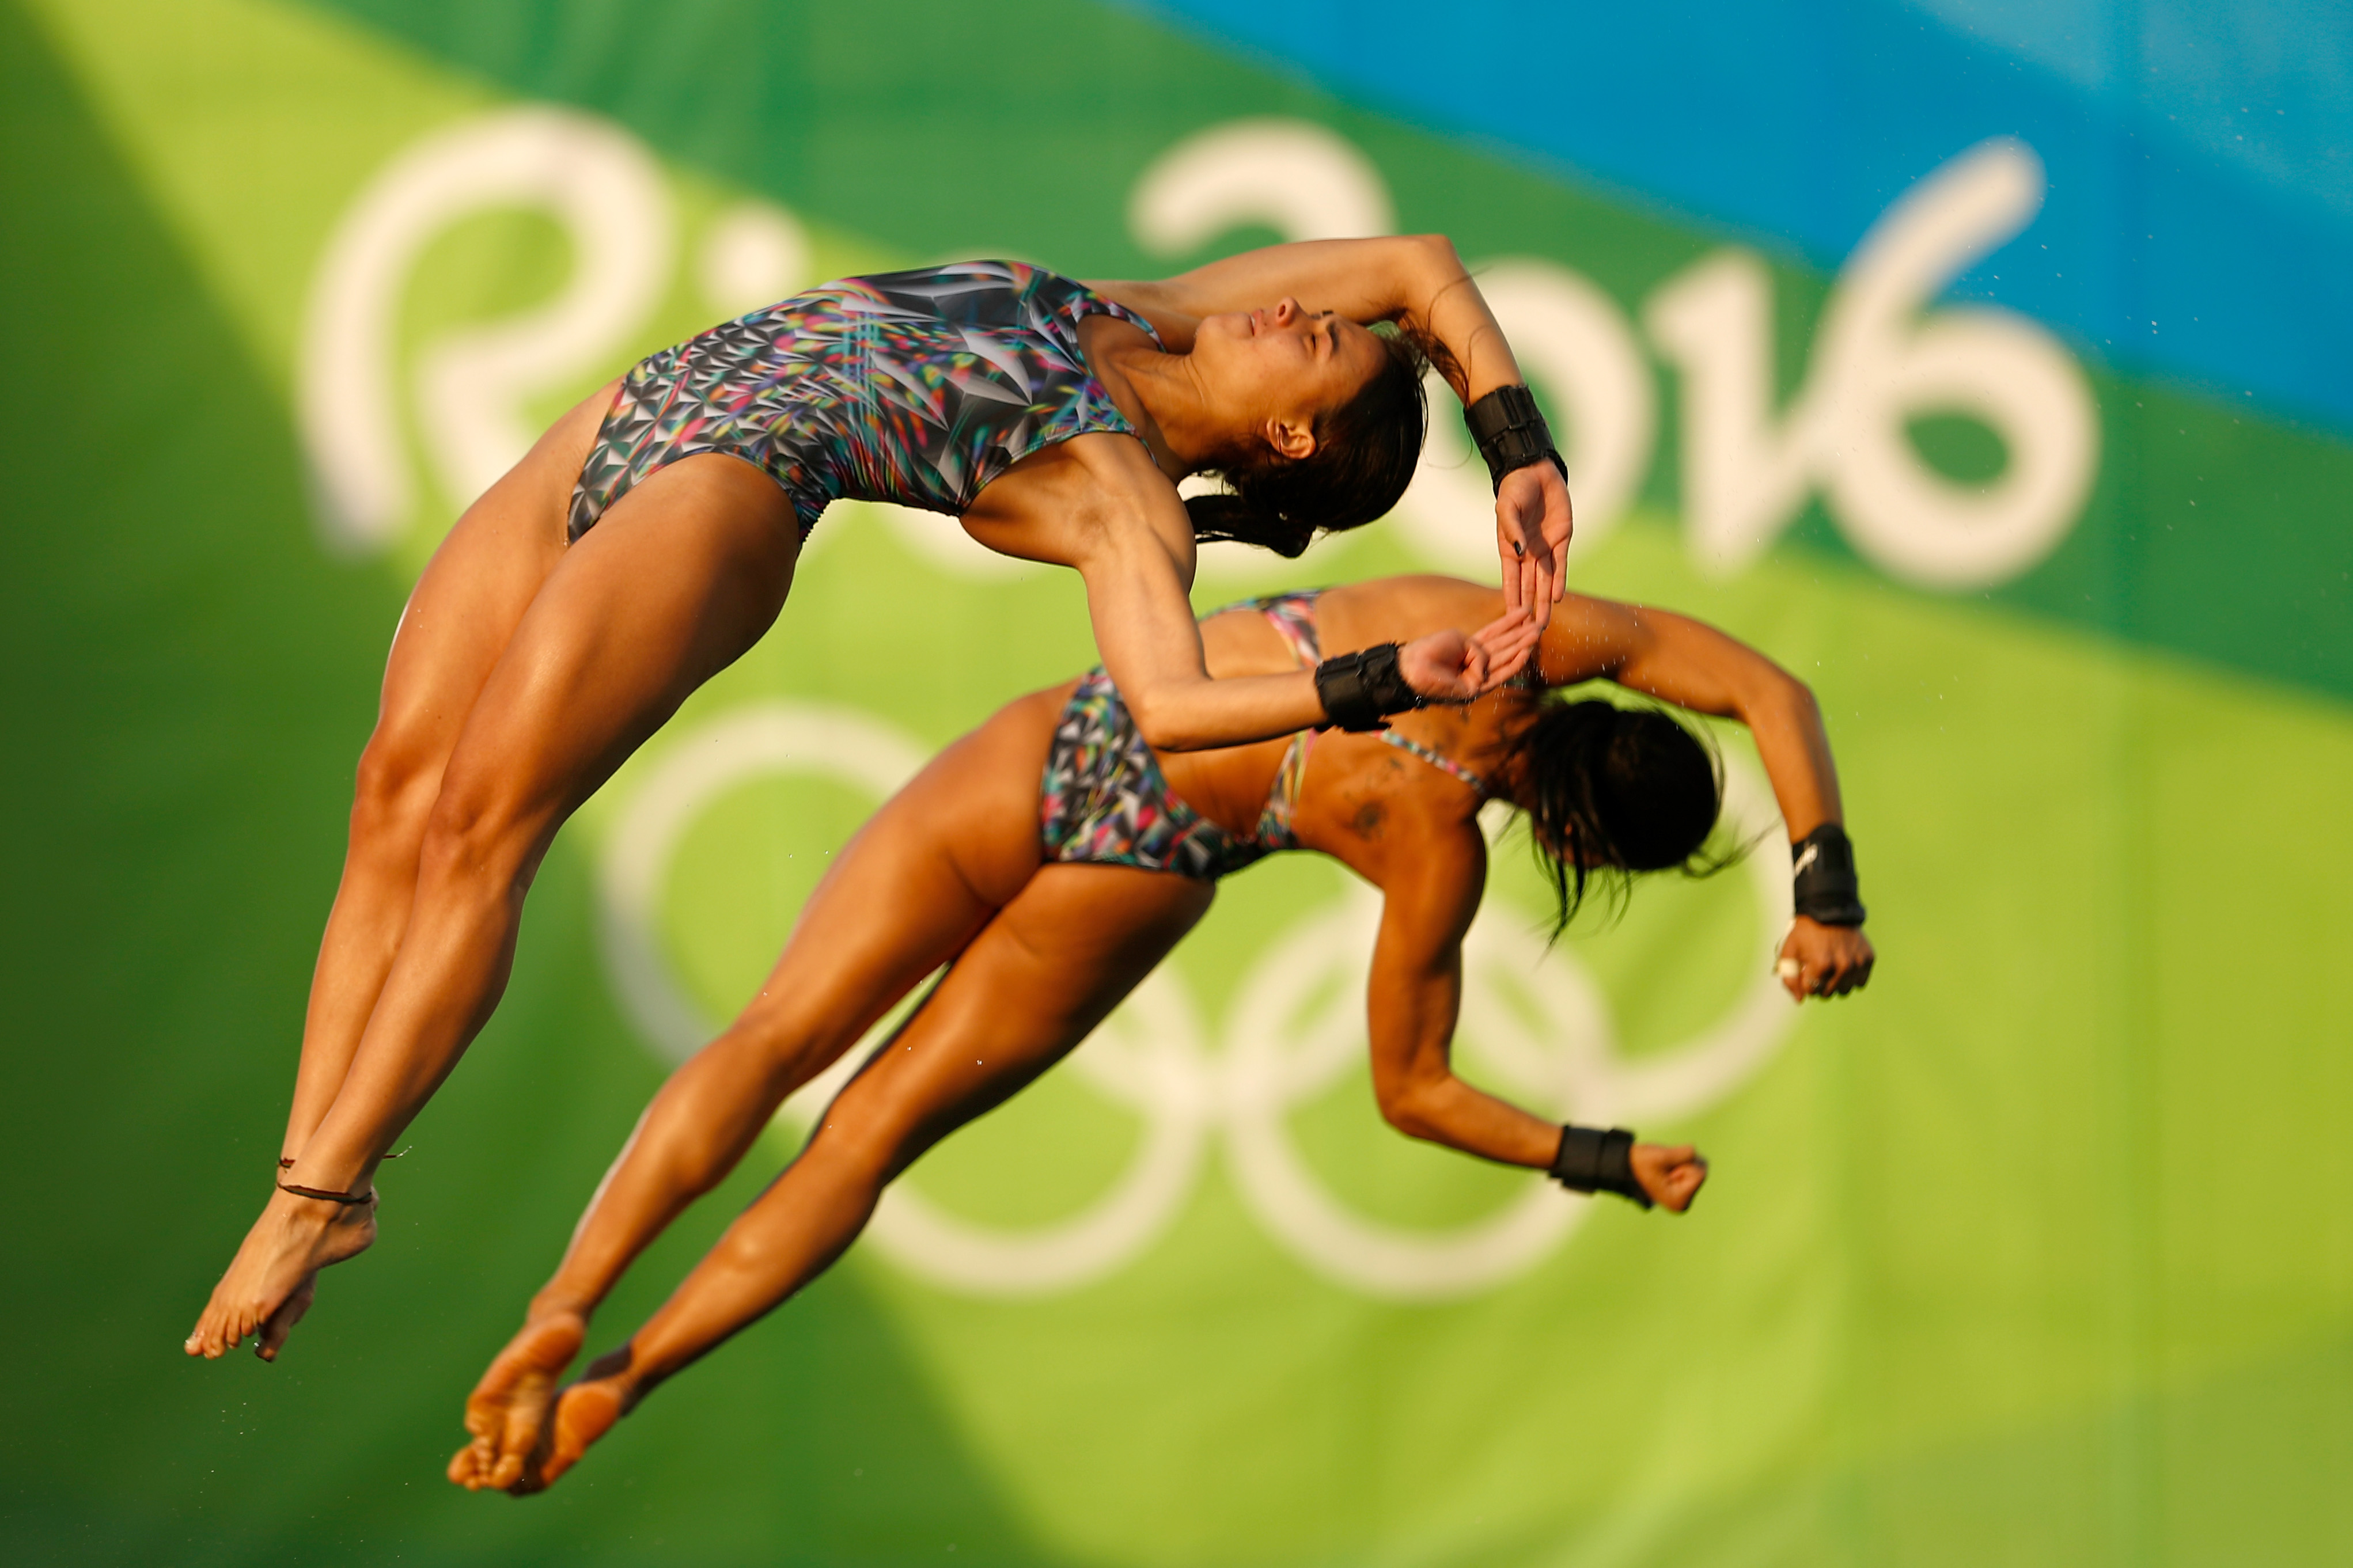 Olympic Diving Duo Split Up Amidst Rio Sex Scandal GettyImages 587764234